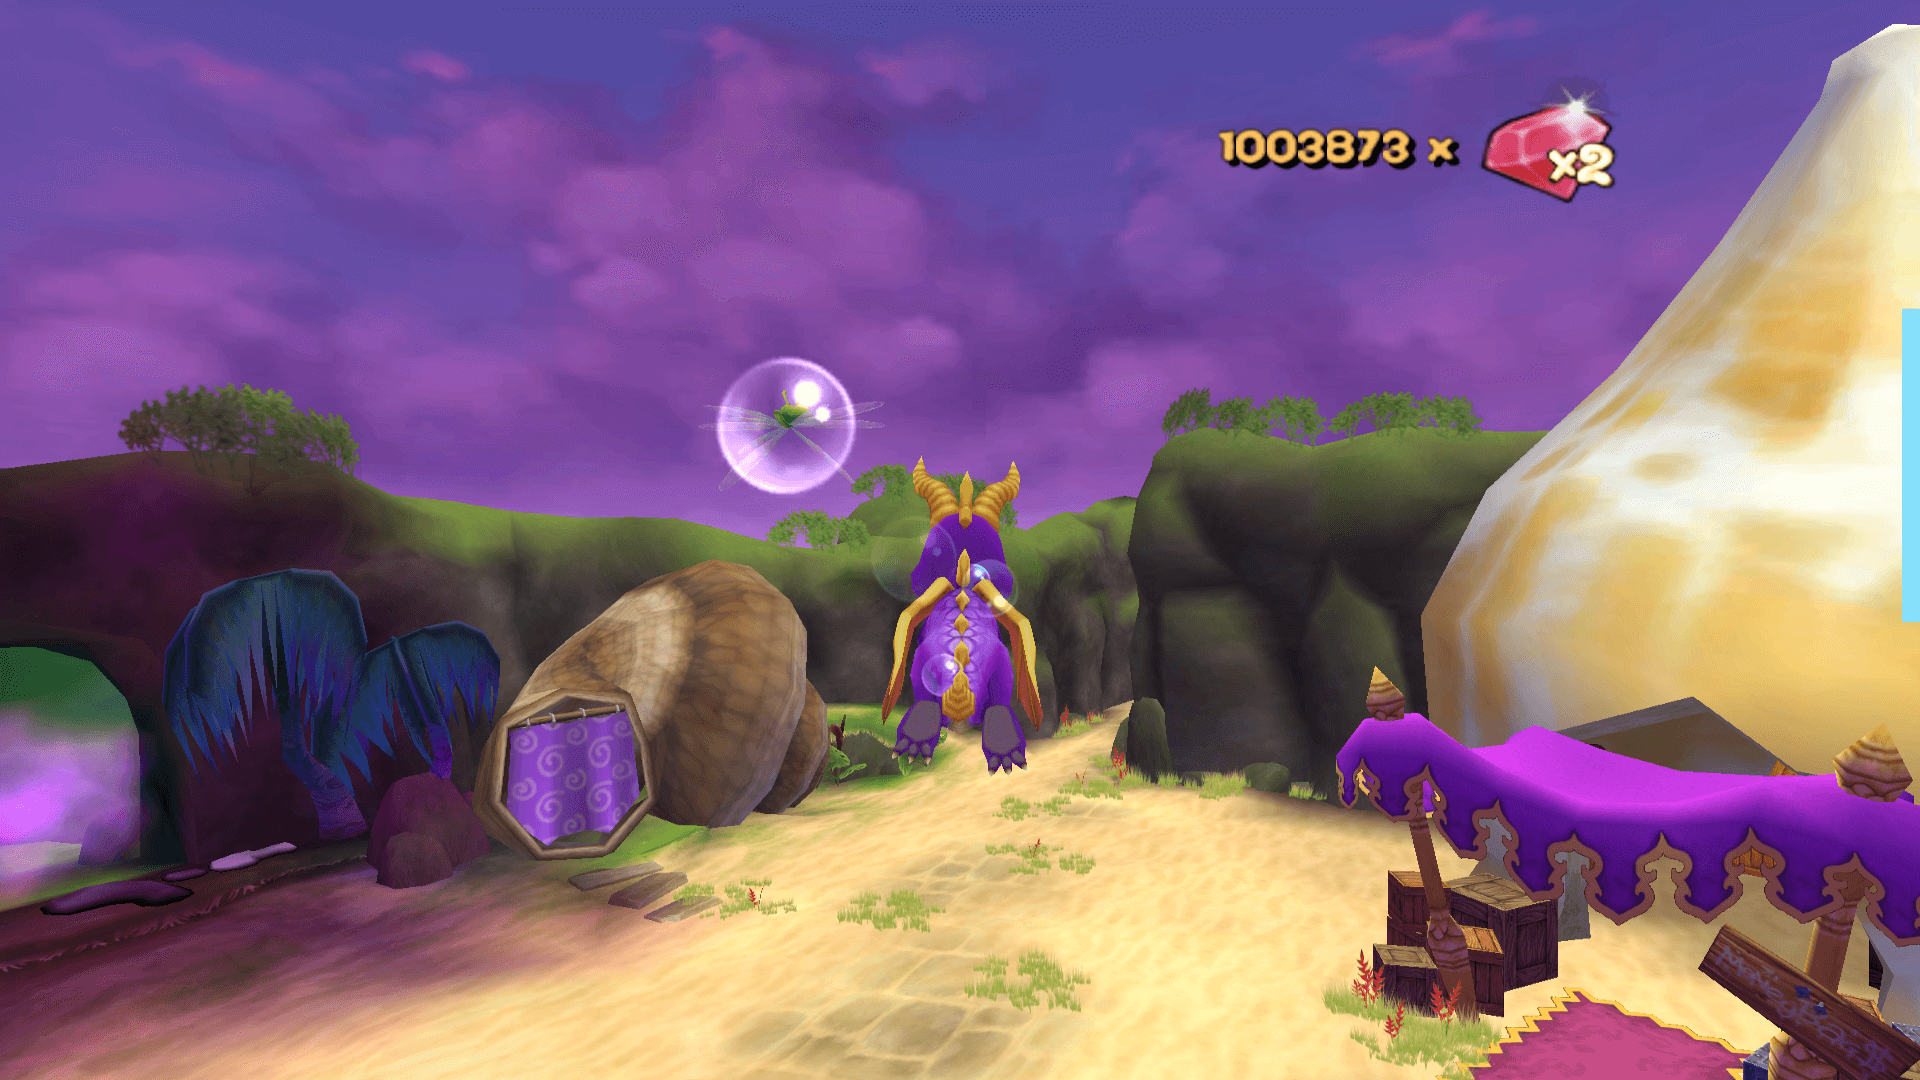 spyro hover on ps4